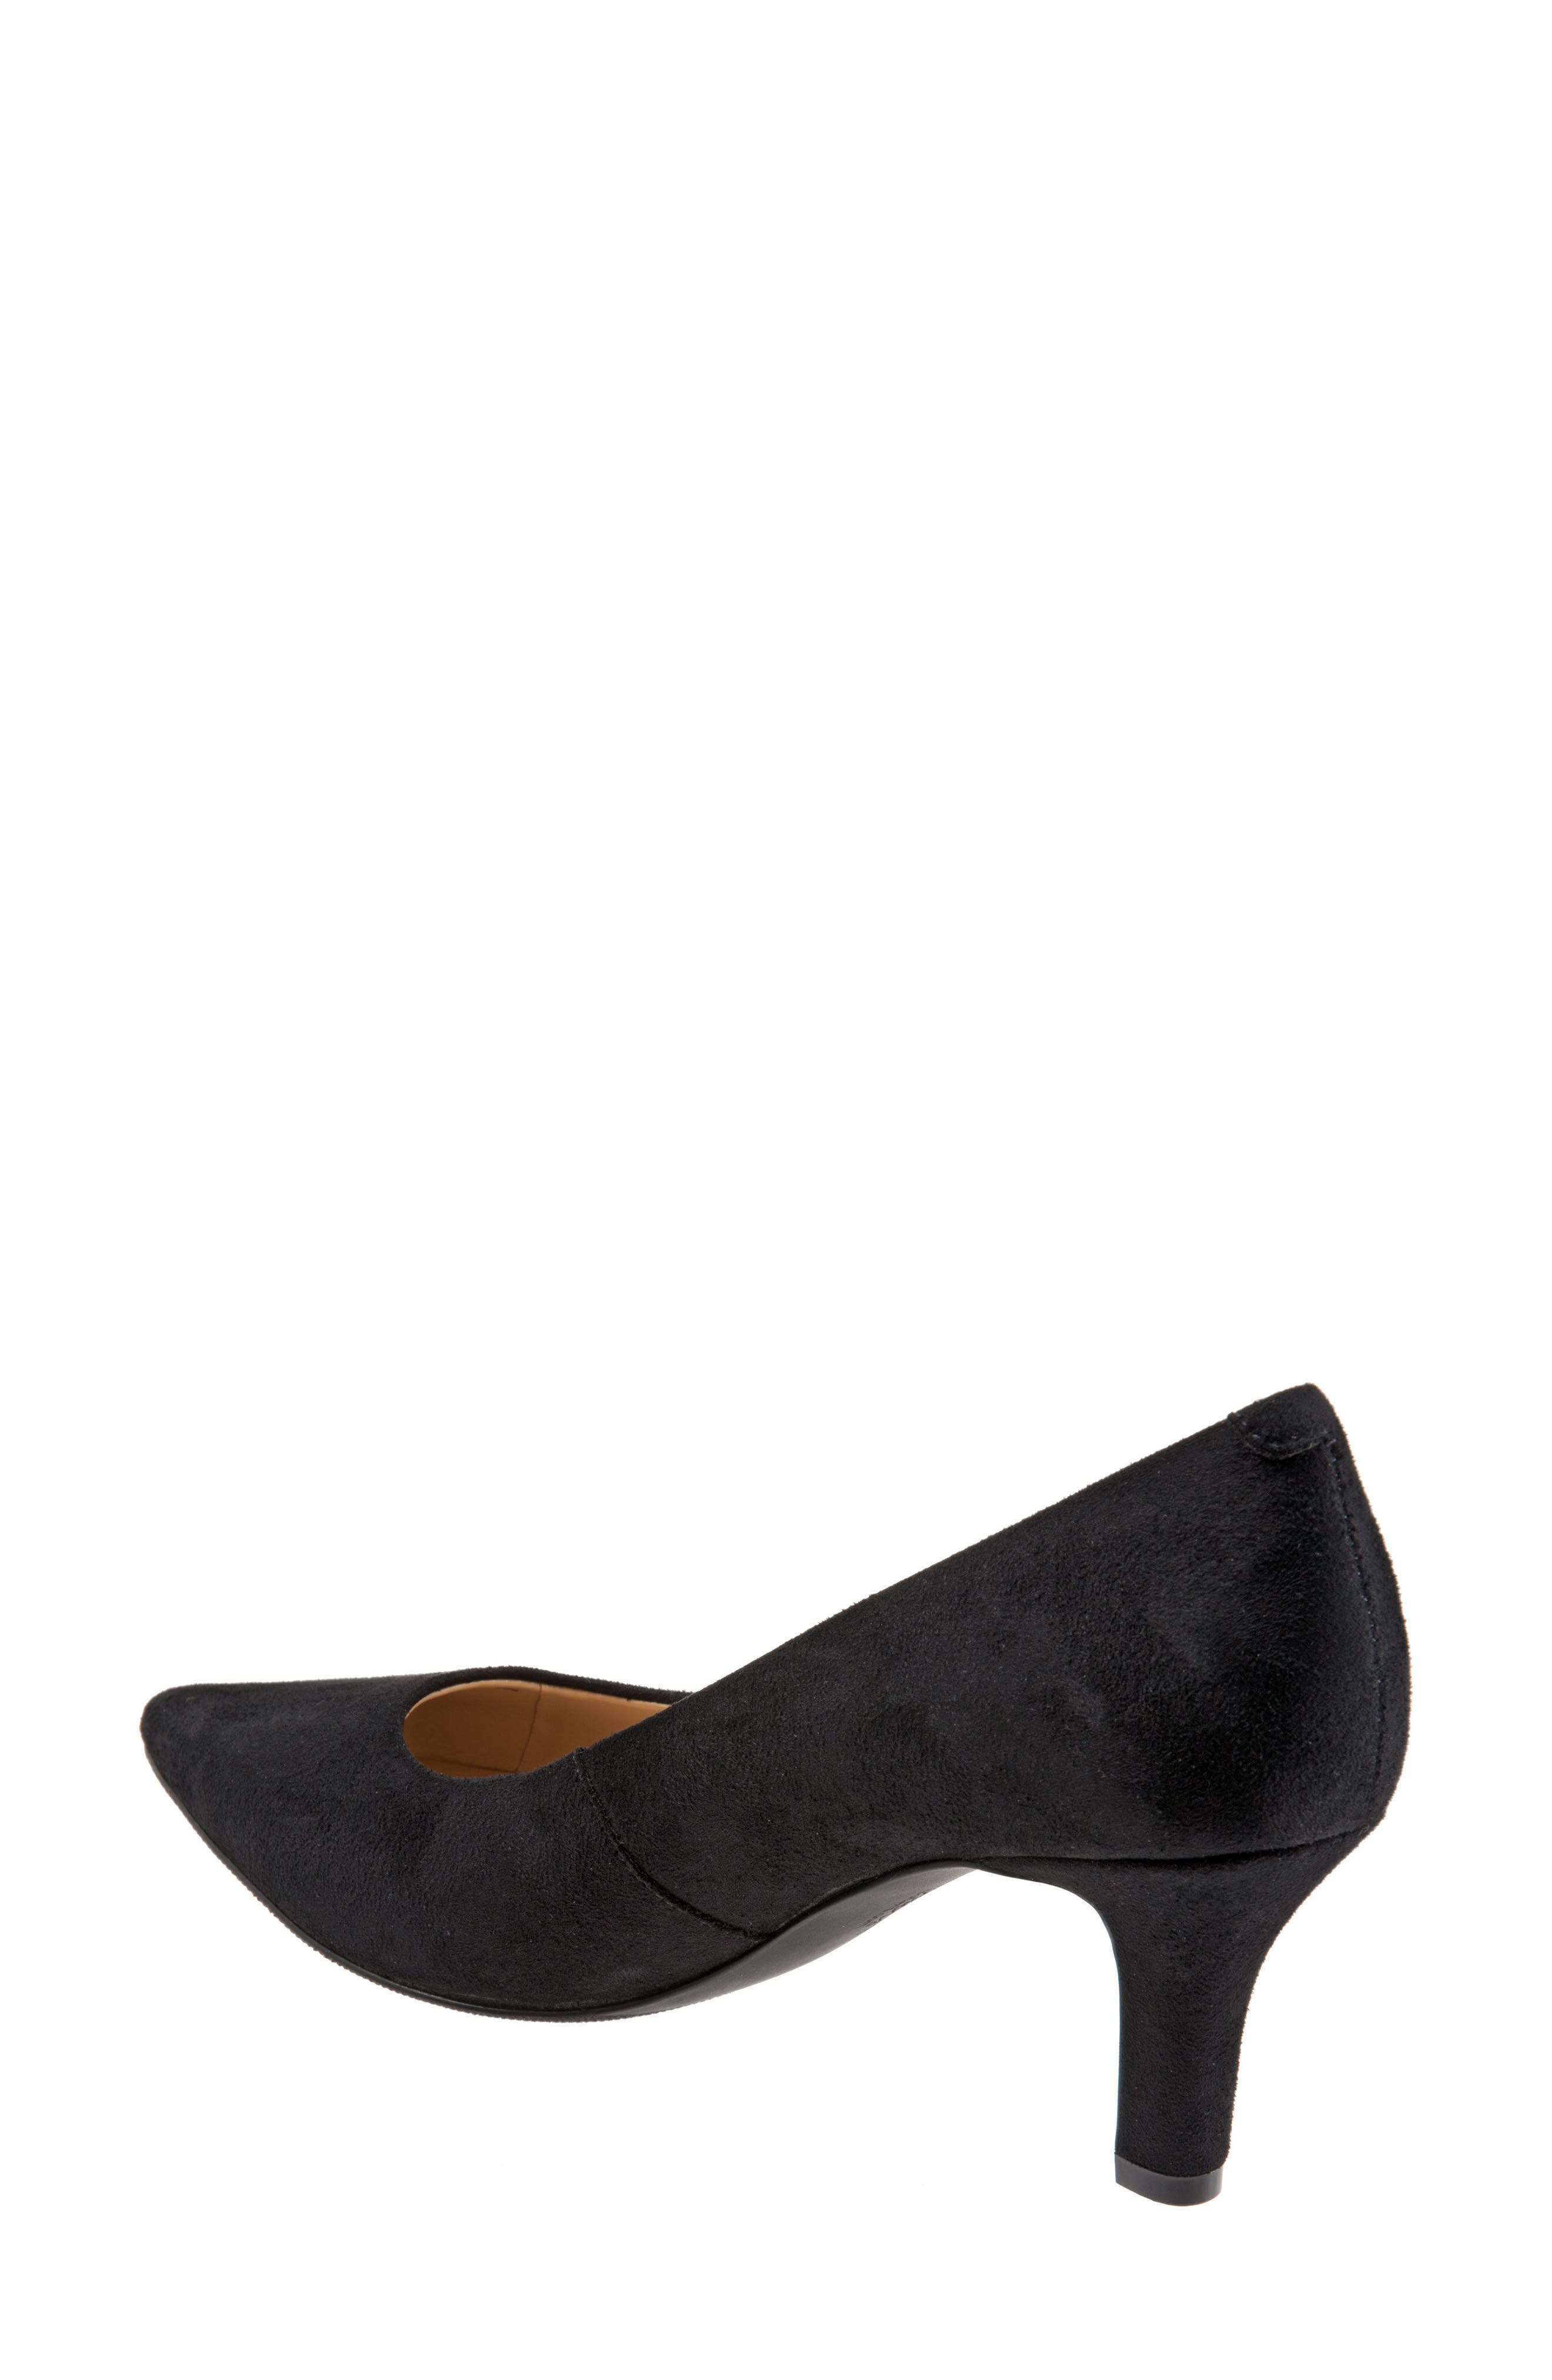 TROTTERS, Noelle Pointy Toe Pump, Alternate thumbnail 2, color, BLACK FABRIC